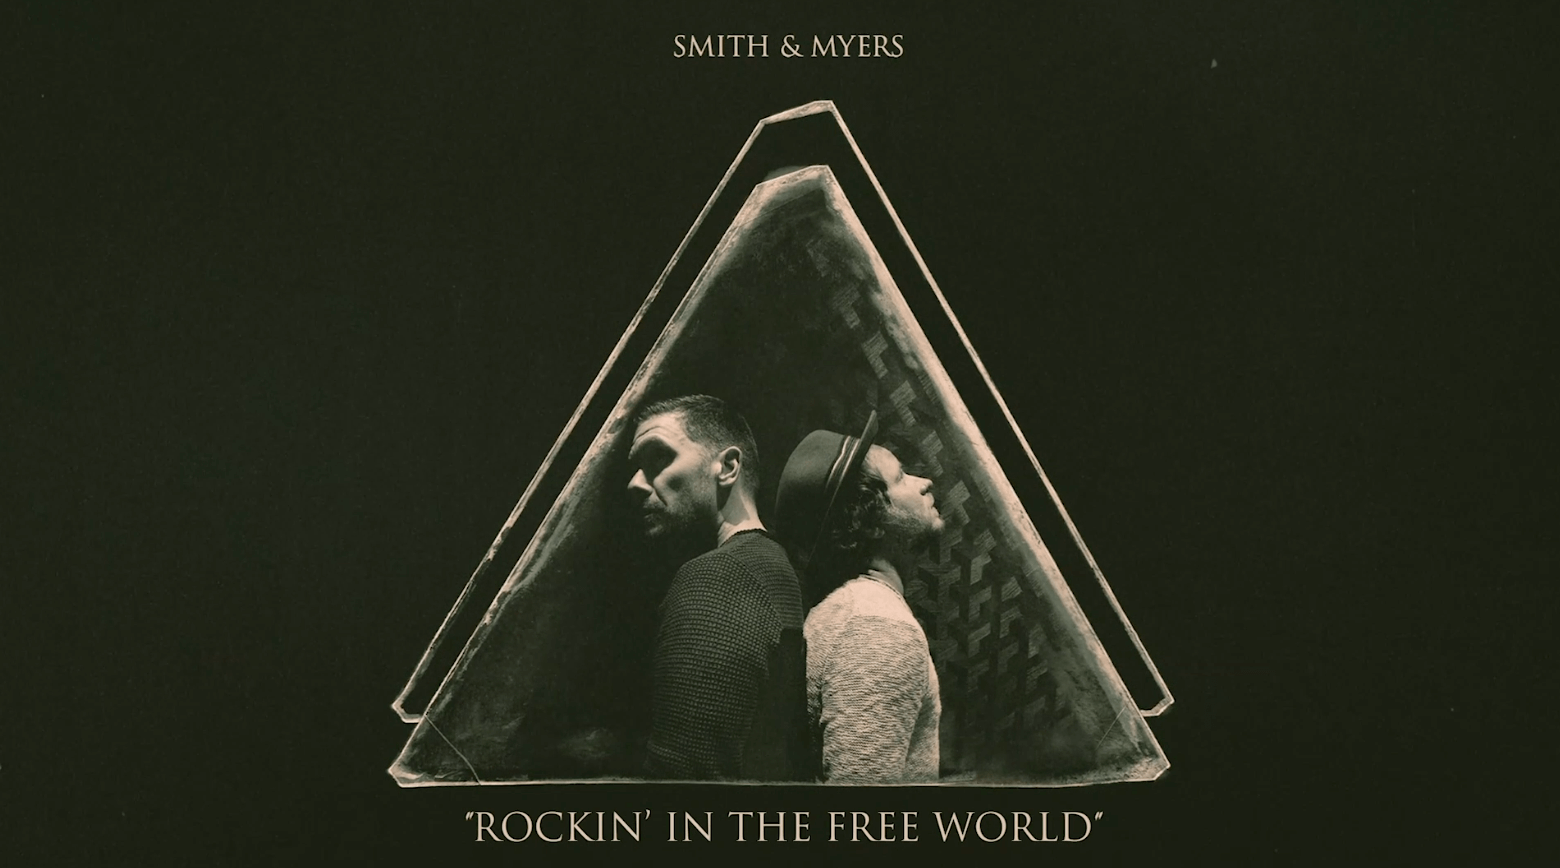 SMITH & MYERS - ROCKIN' IN THE FREE WORLD (NEIL YOUNG COVER) [OFFICIAL AUDIO]